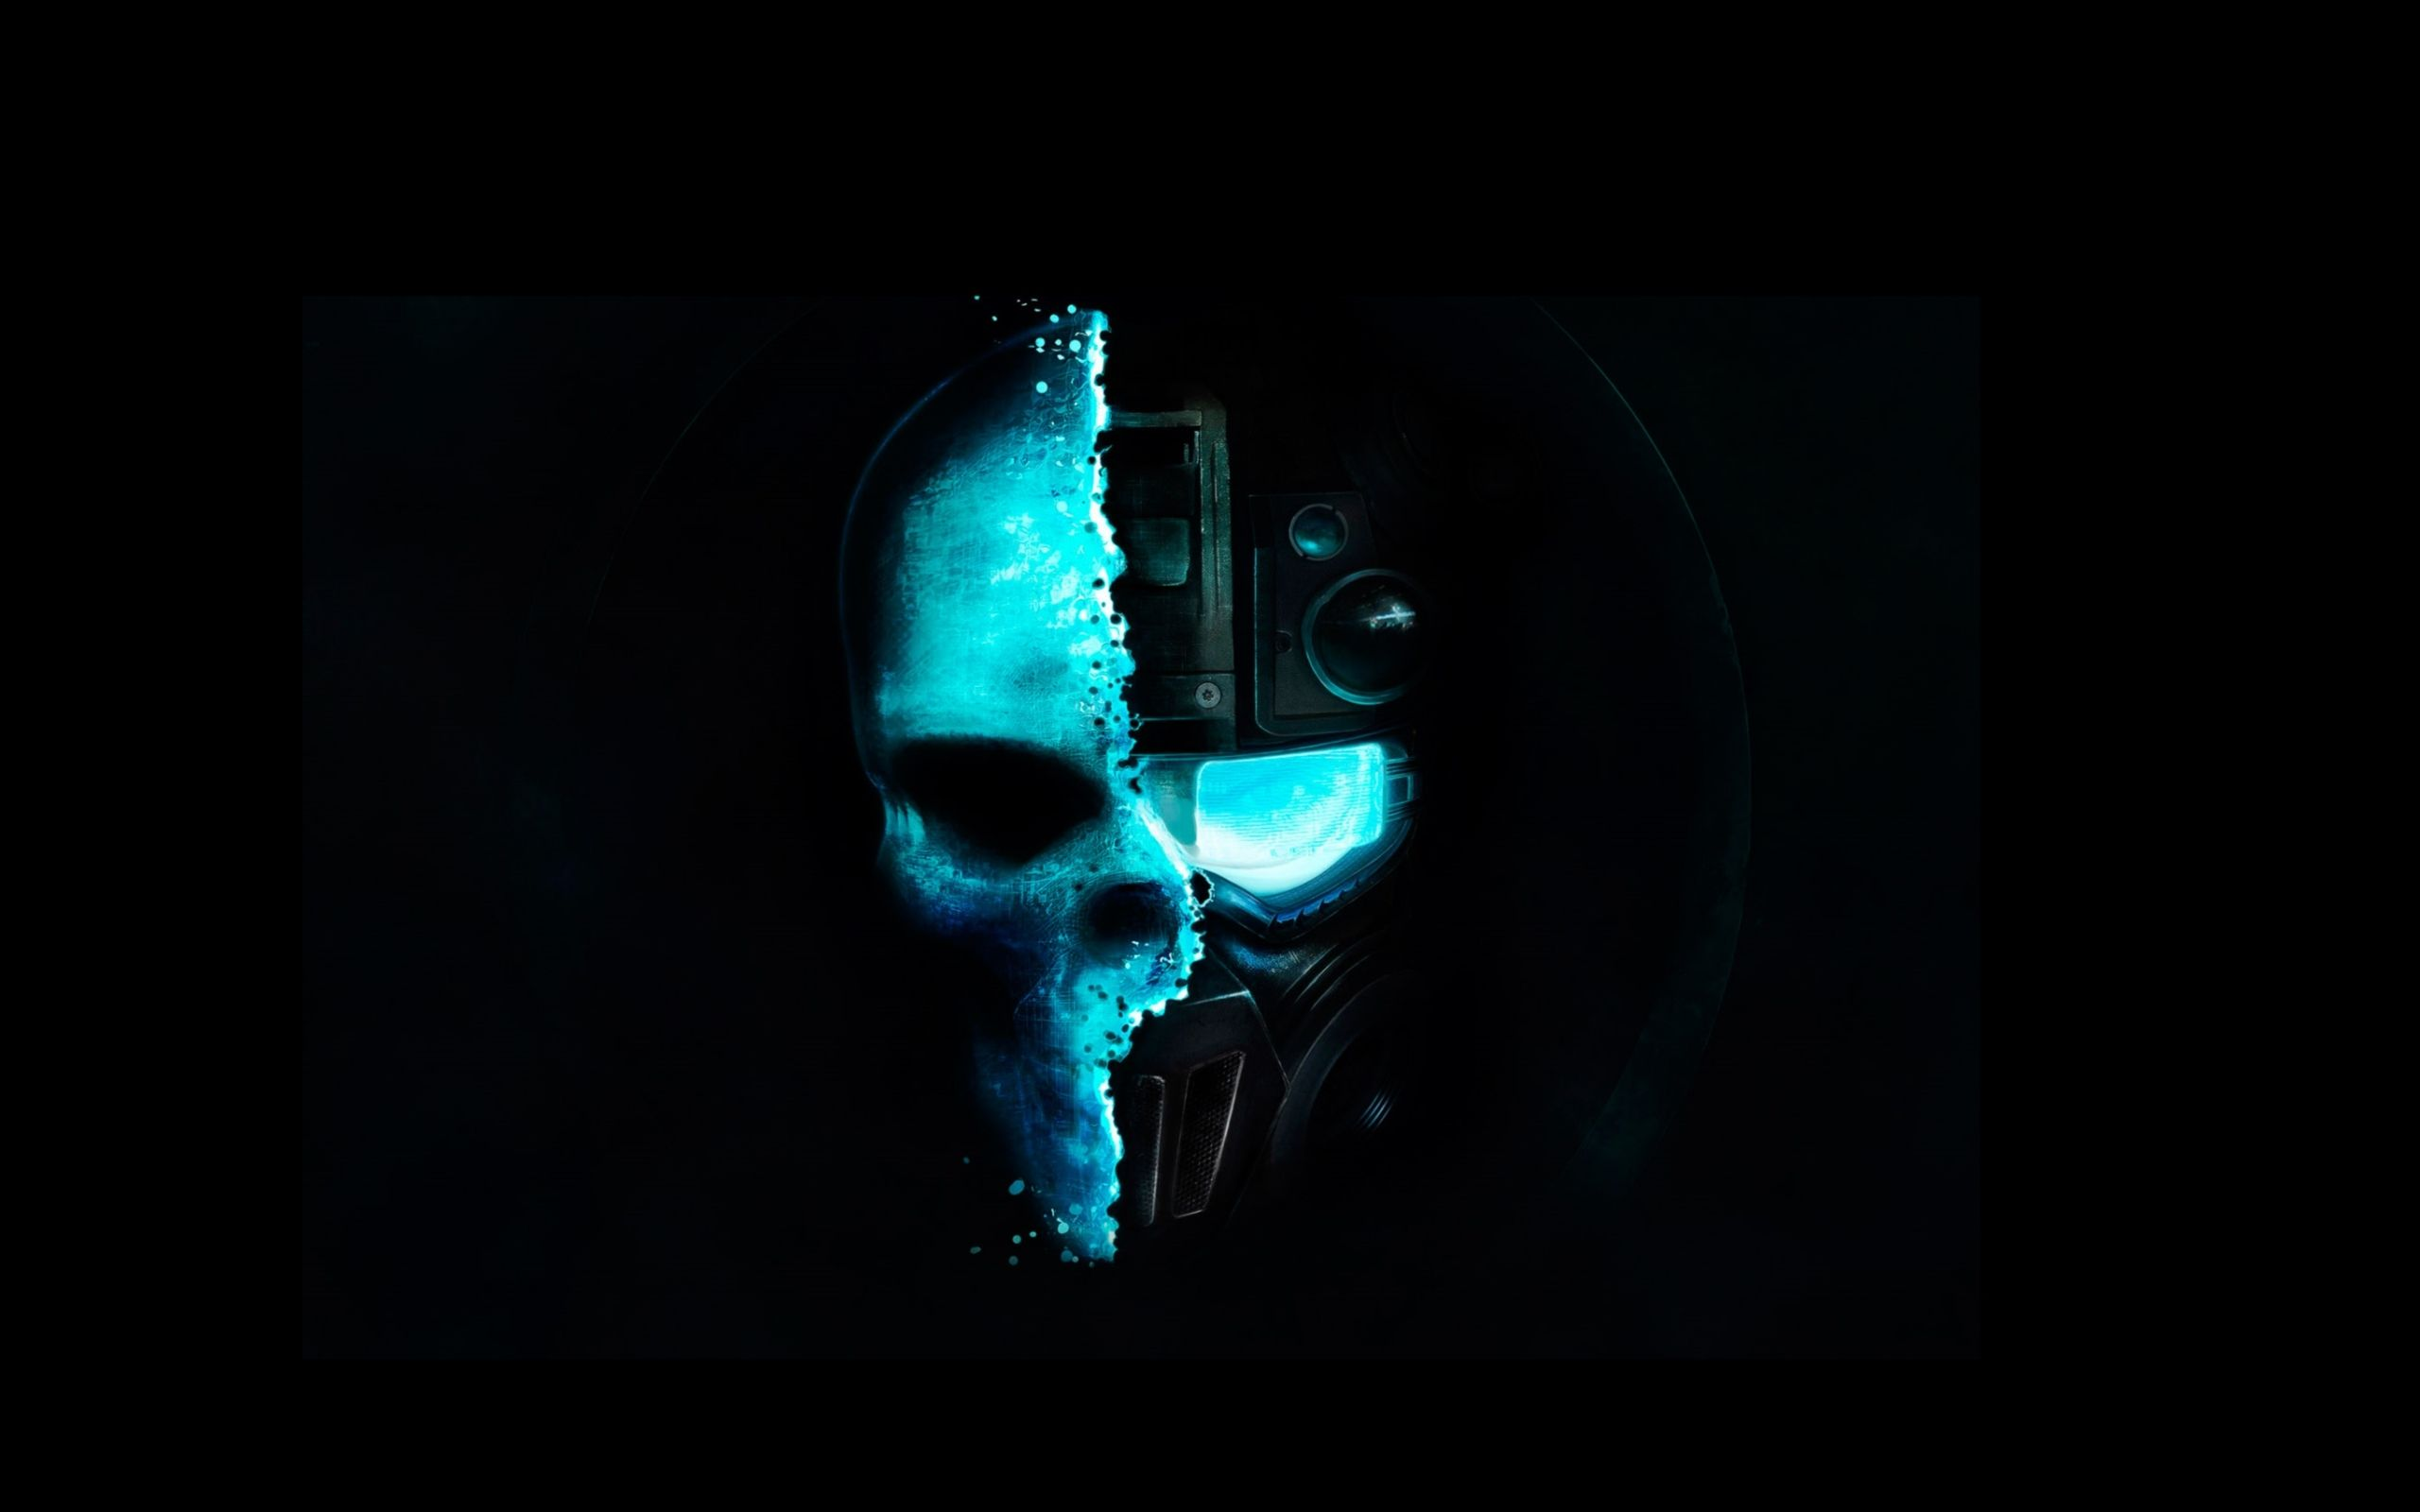 Skull Abstract Hd Wallpaper Dazzling Wallpaper Skull Wallpaper Tom Clancy Ghost Recon Gaming Wallpapers